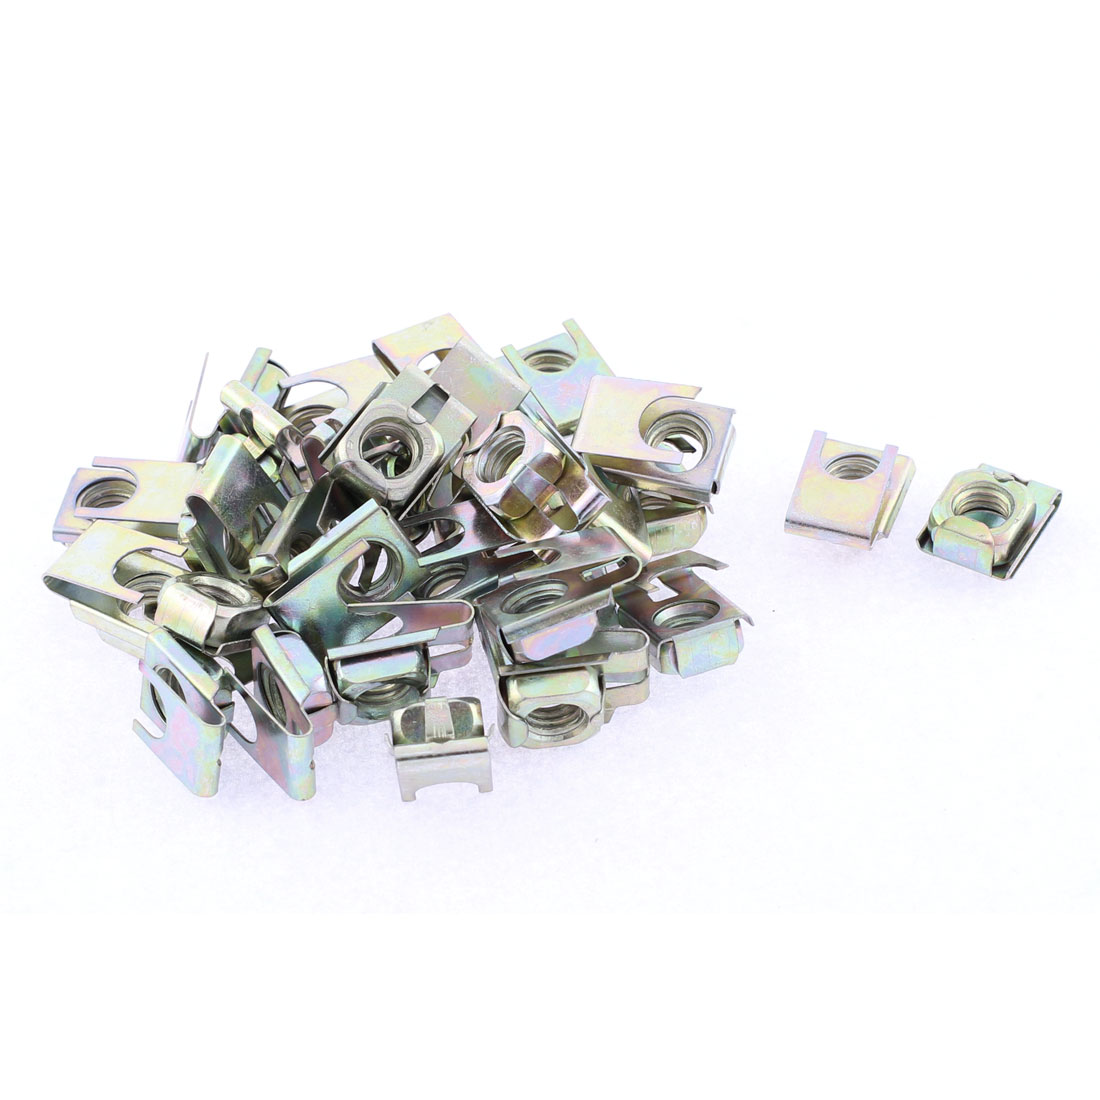 30 Pcs 22mm x 16mm Metal Plate U-Type Clips Speed Nuts for Auto Panel Fender